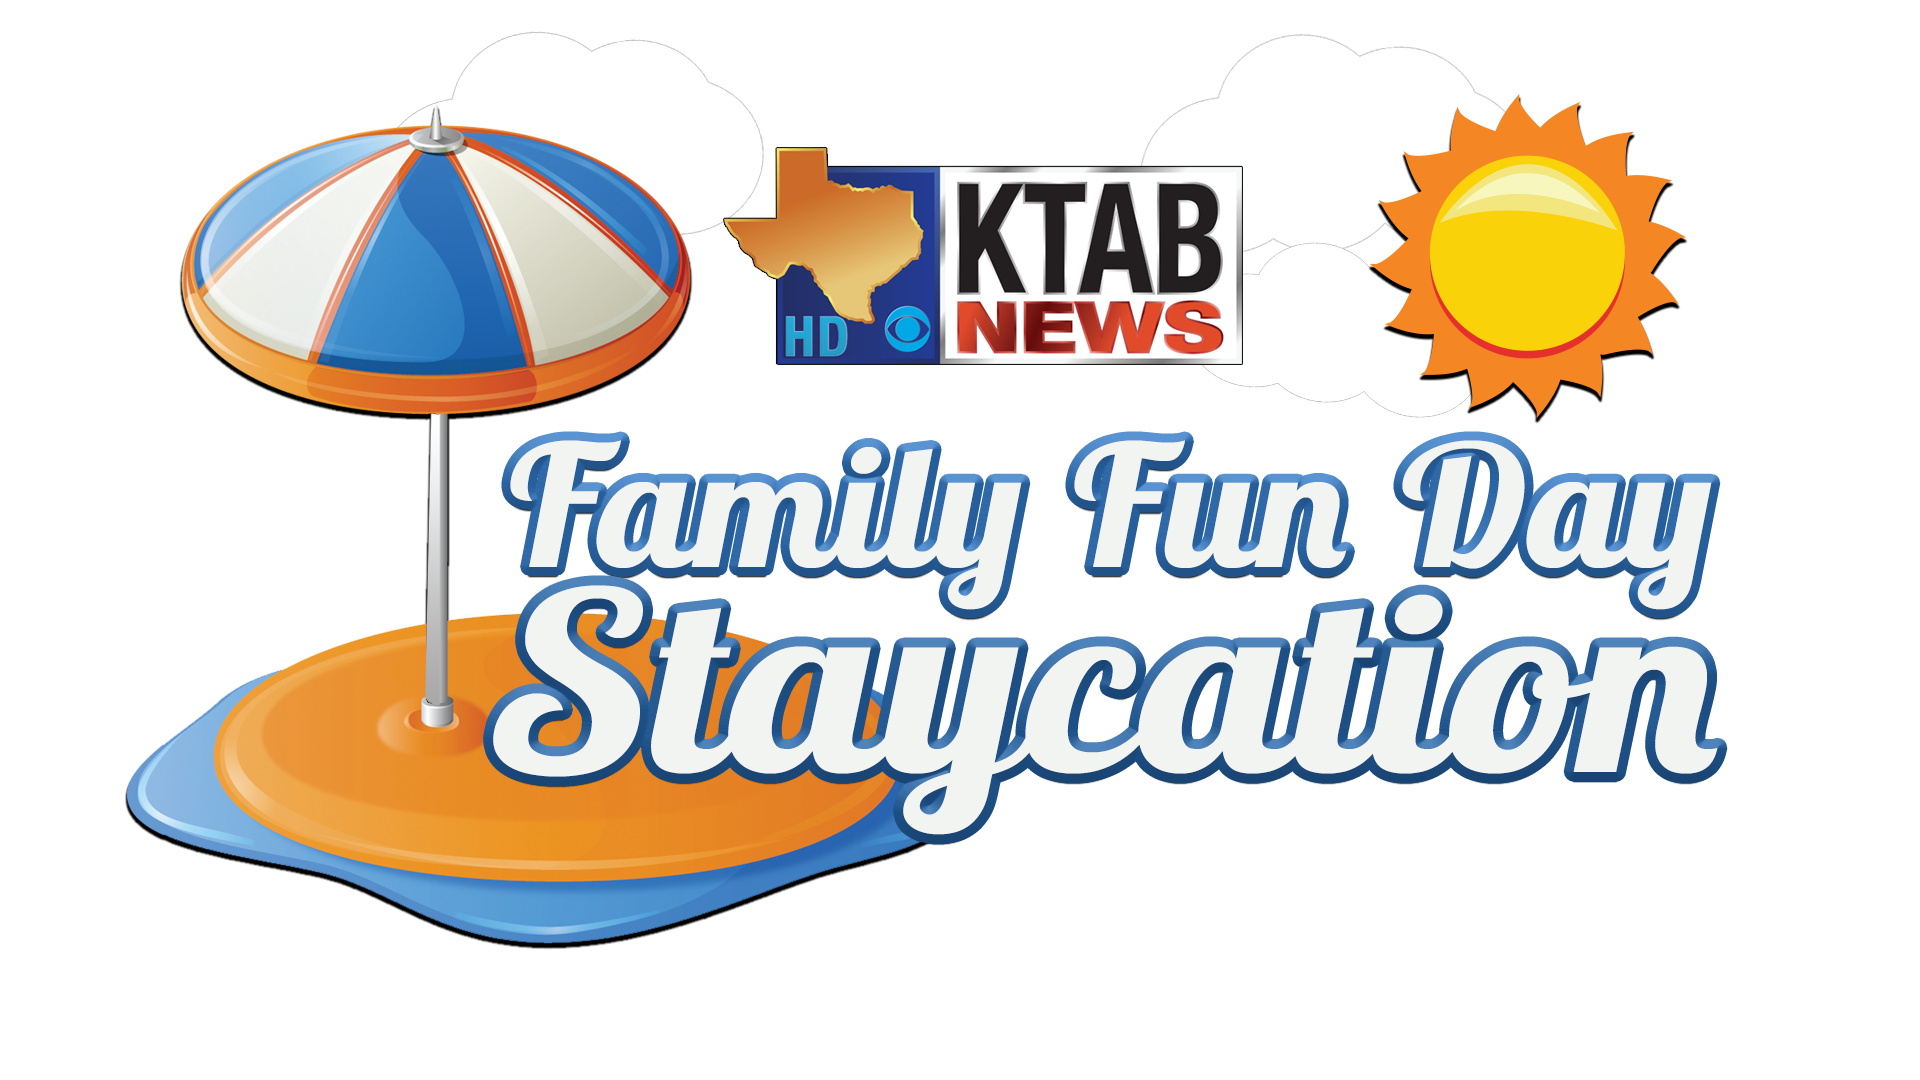 Clipart park family day out. Ffd staycation logo ver